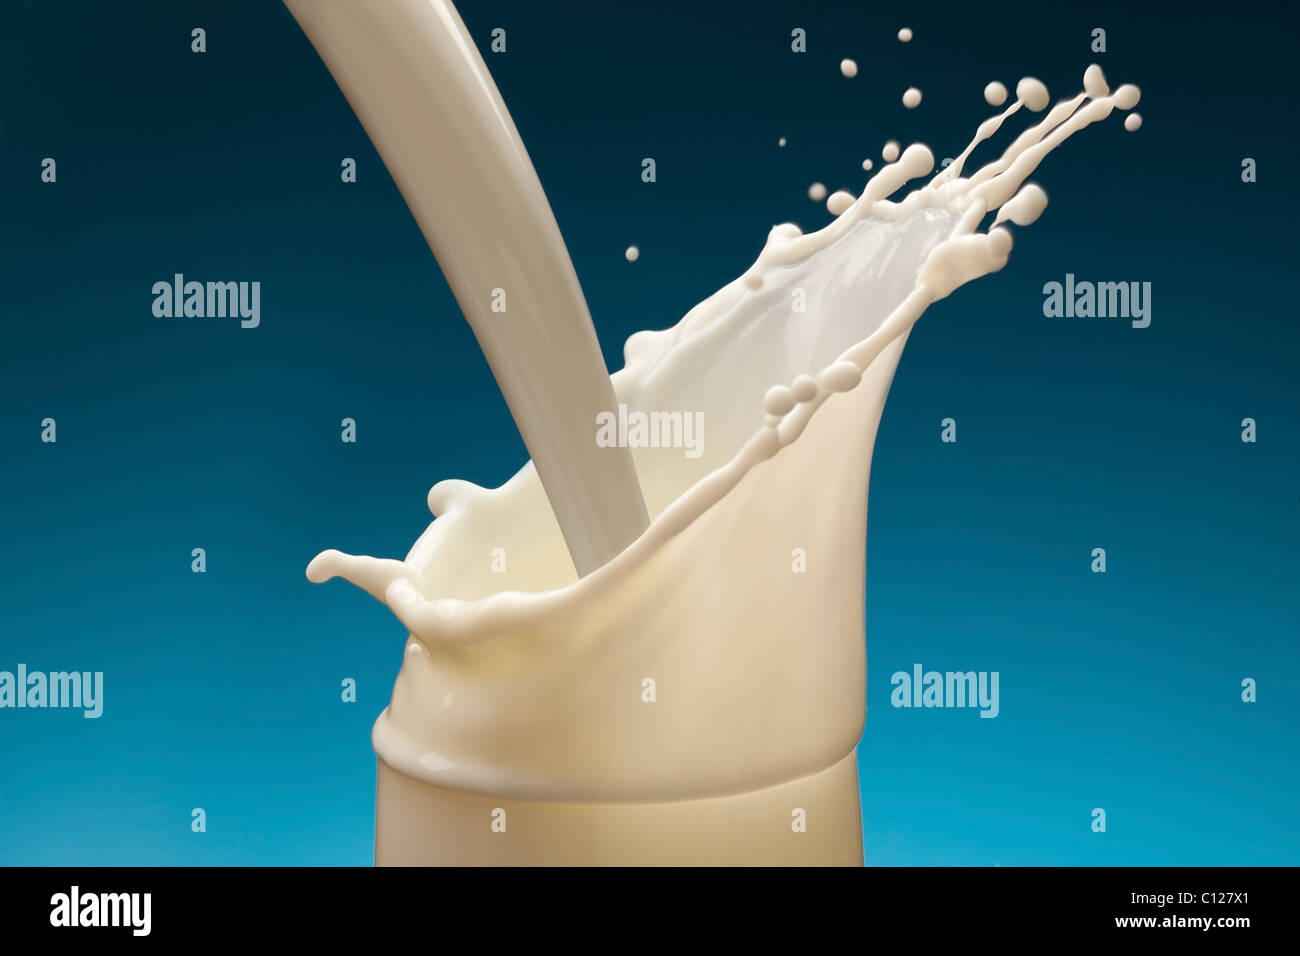 Splash of milk from the glass on a blue background - Stock Image